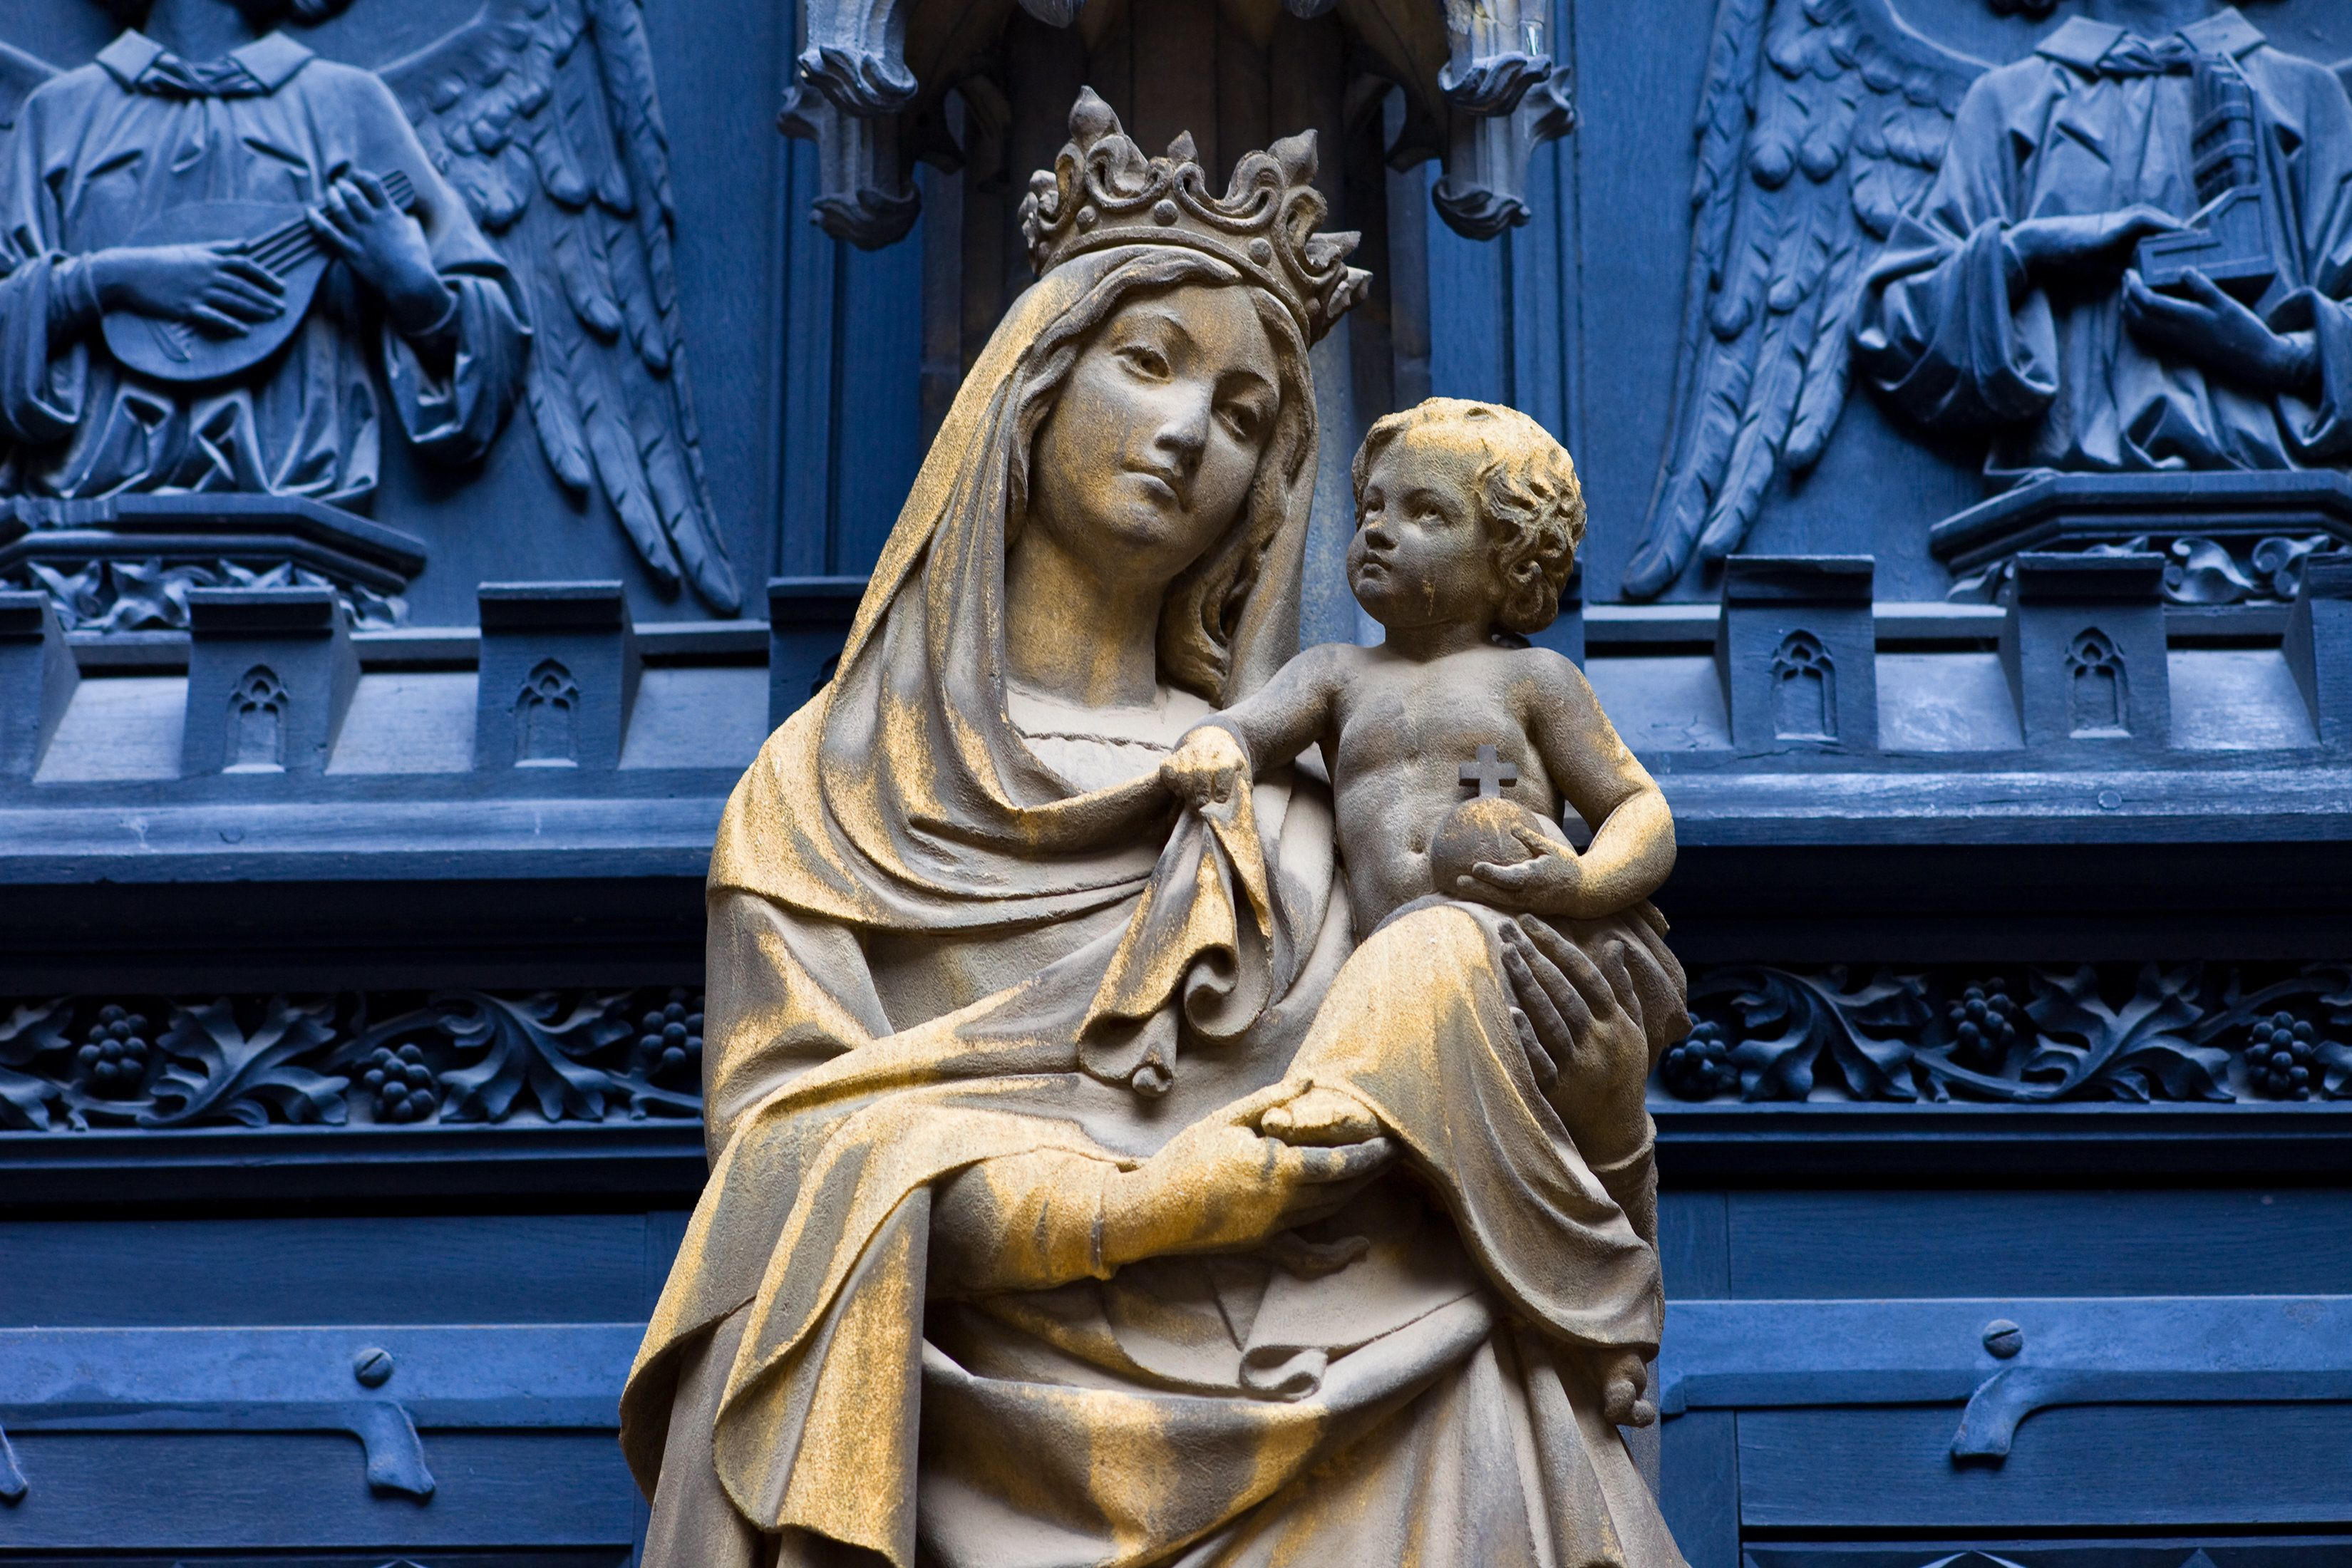 FYI: 'Immaculate Conception' Does Not Mean What You Think It